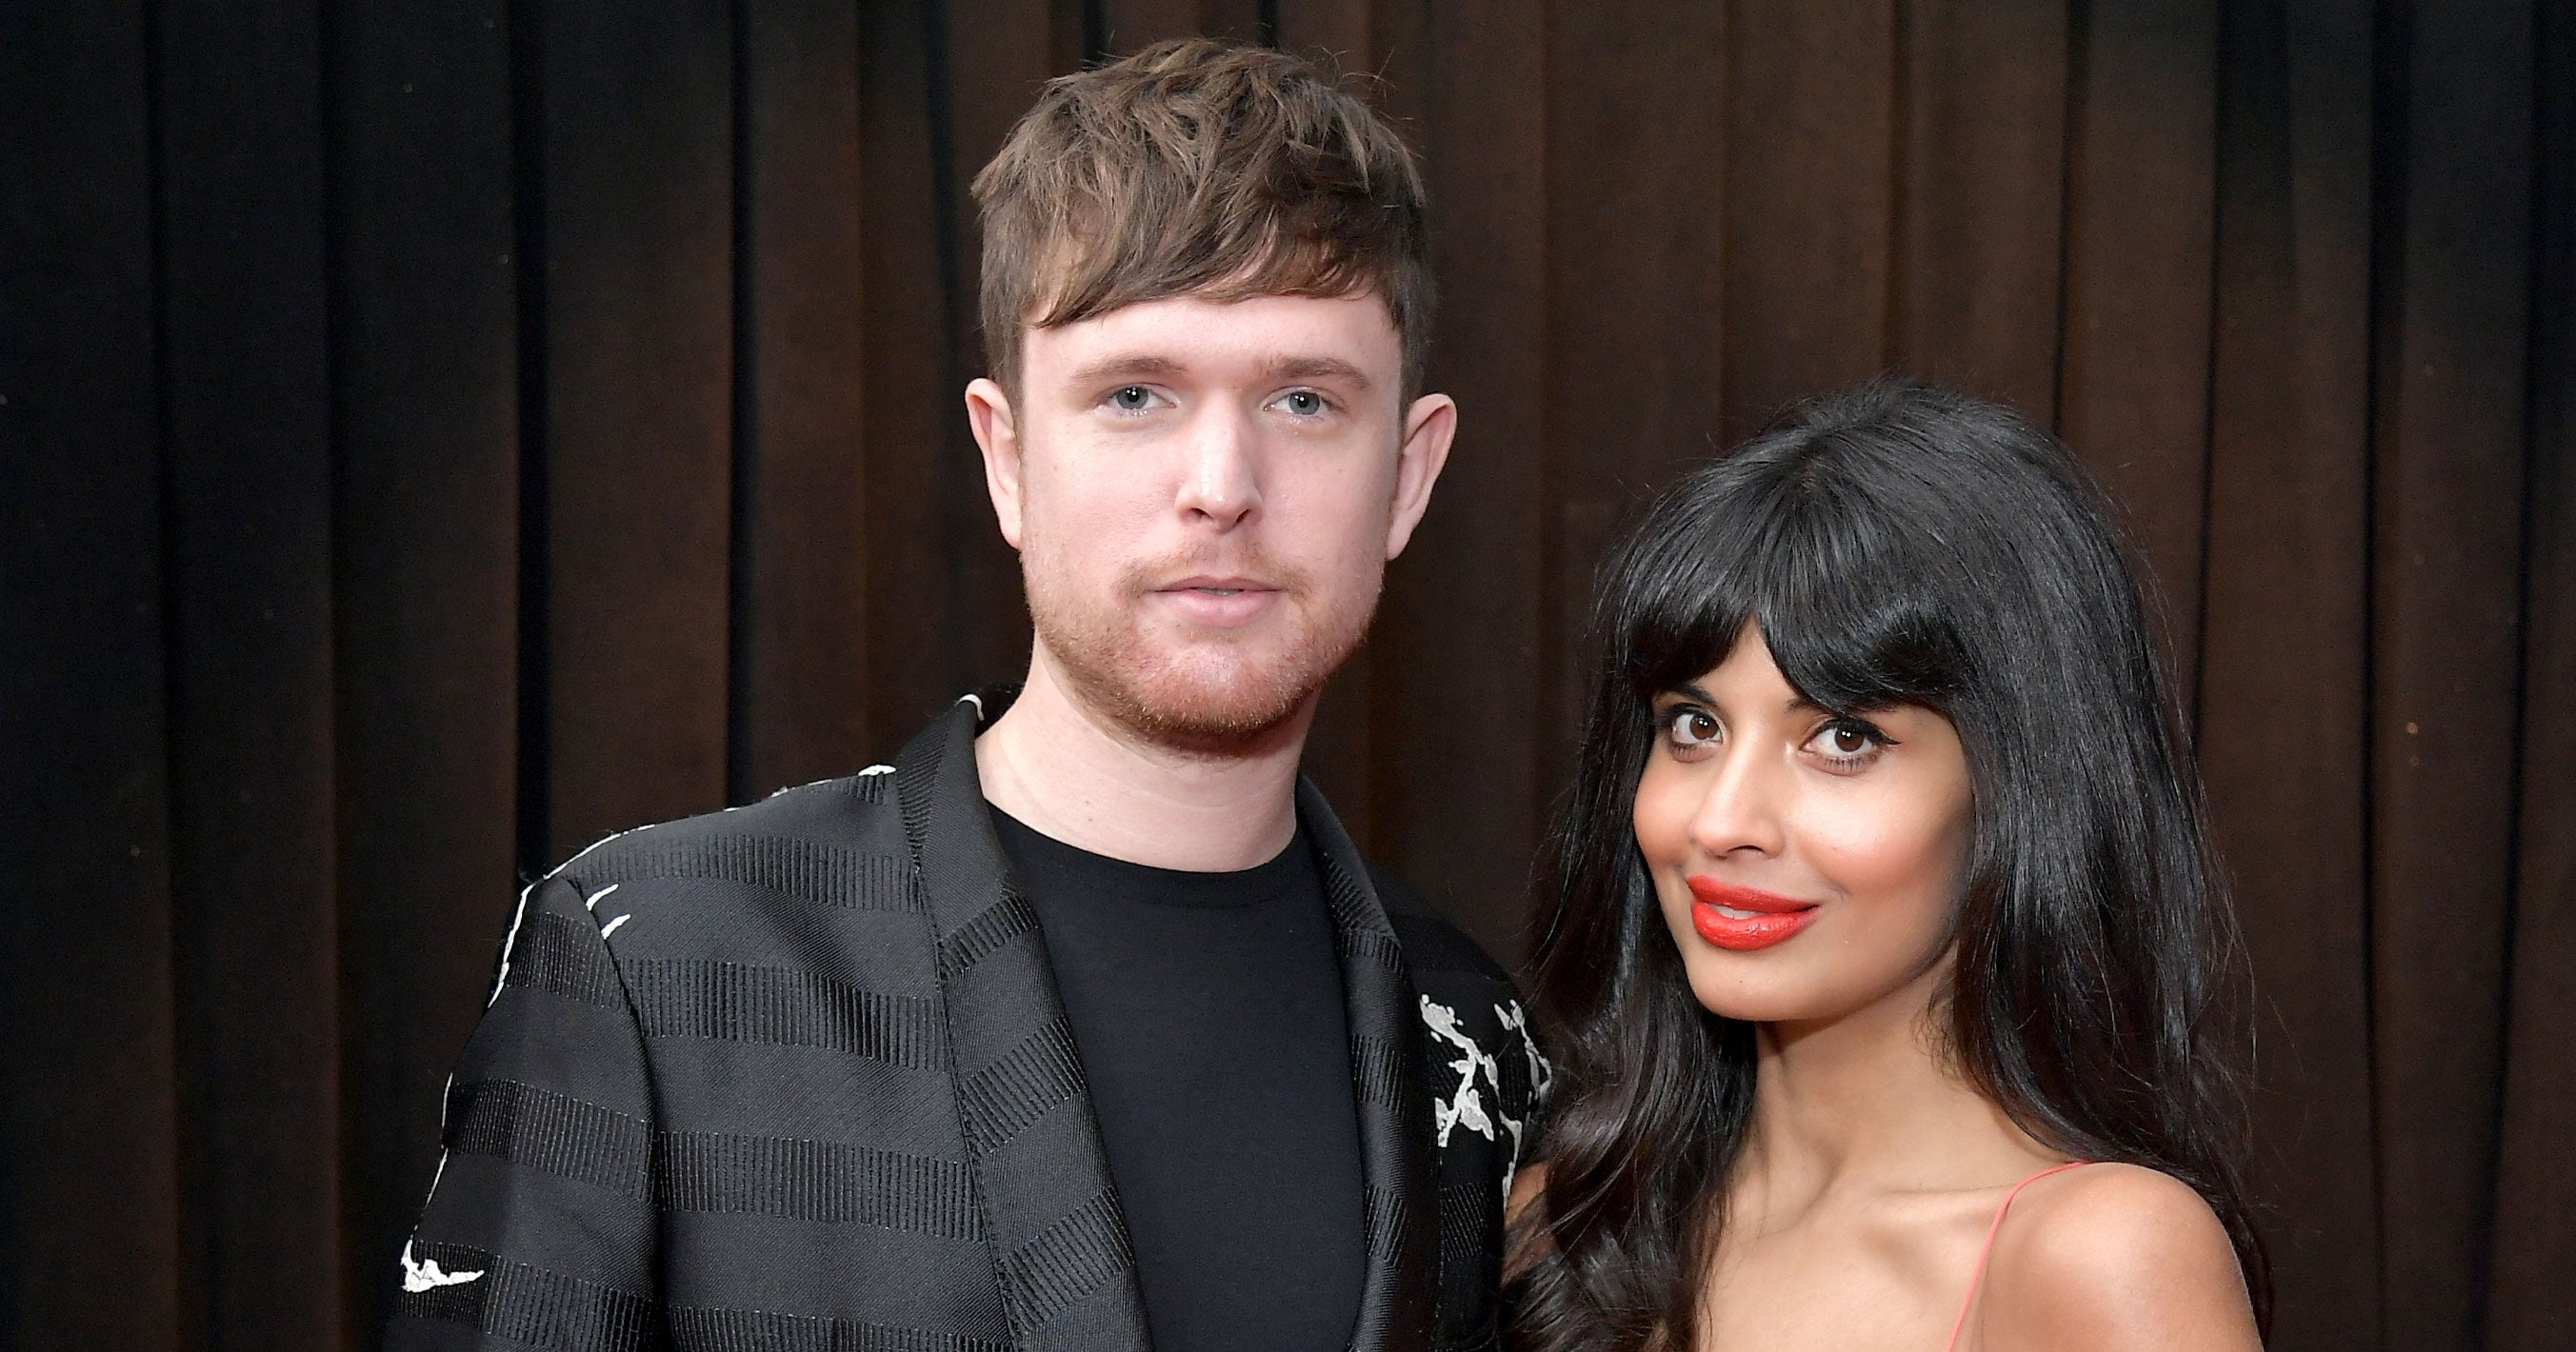 """Jameela Jamil's Boyfriend Comes To Her Defense Over """"Disgusting Lies"""""""